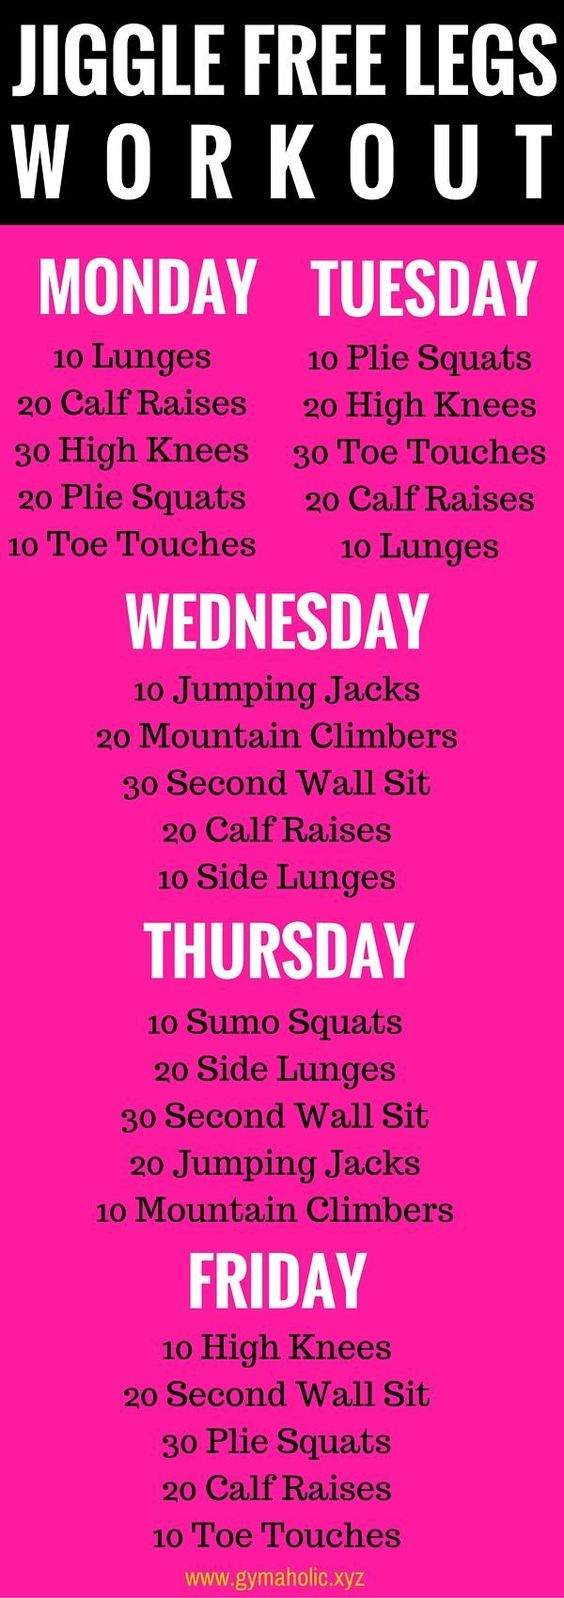 5 moves a day for 5 days - to yummy, jiggle-free, lean legs.